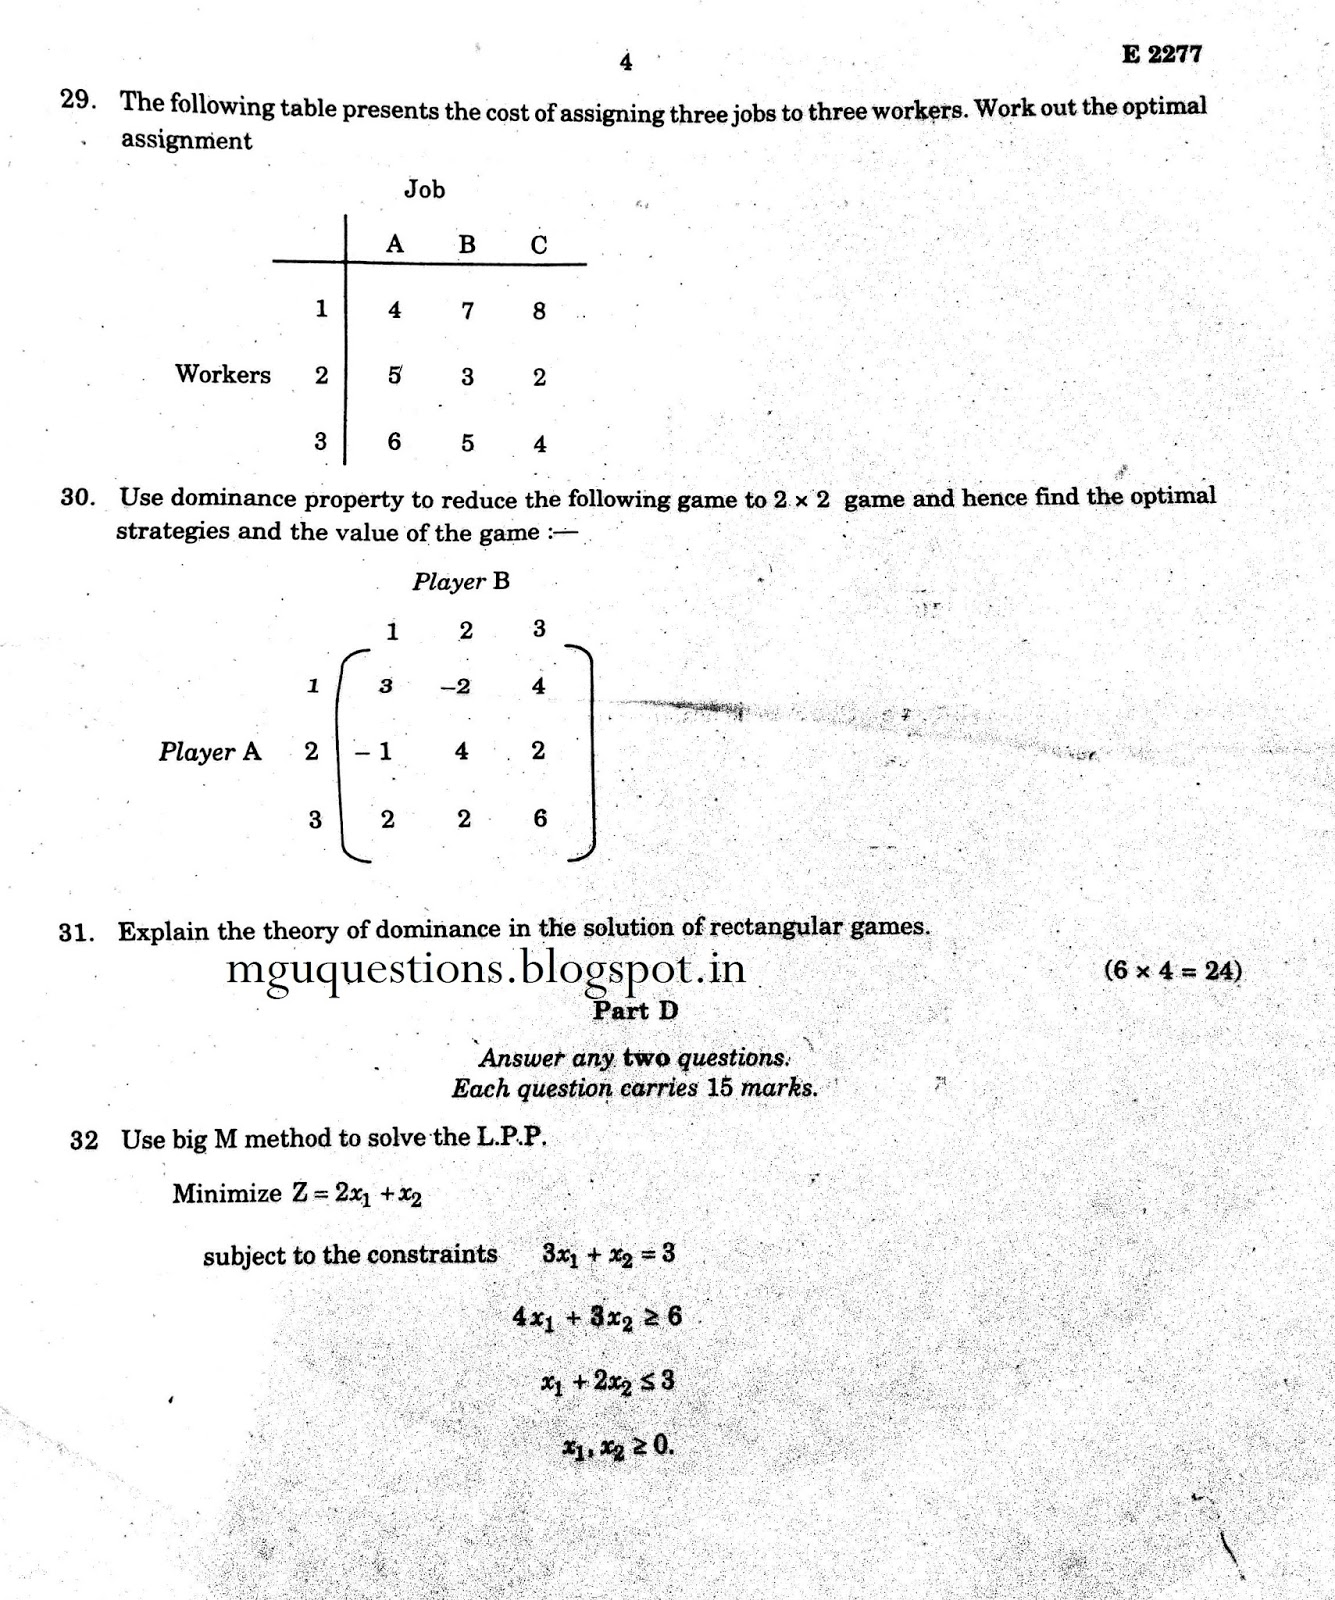 Operation research question paper with solution 2016